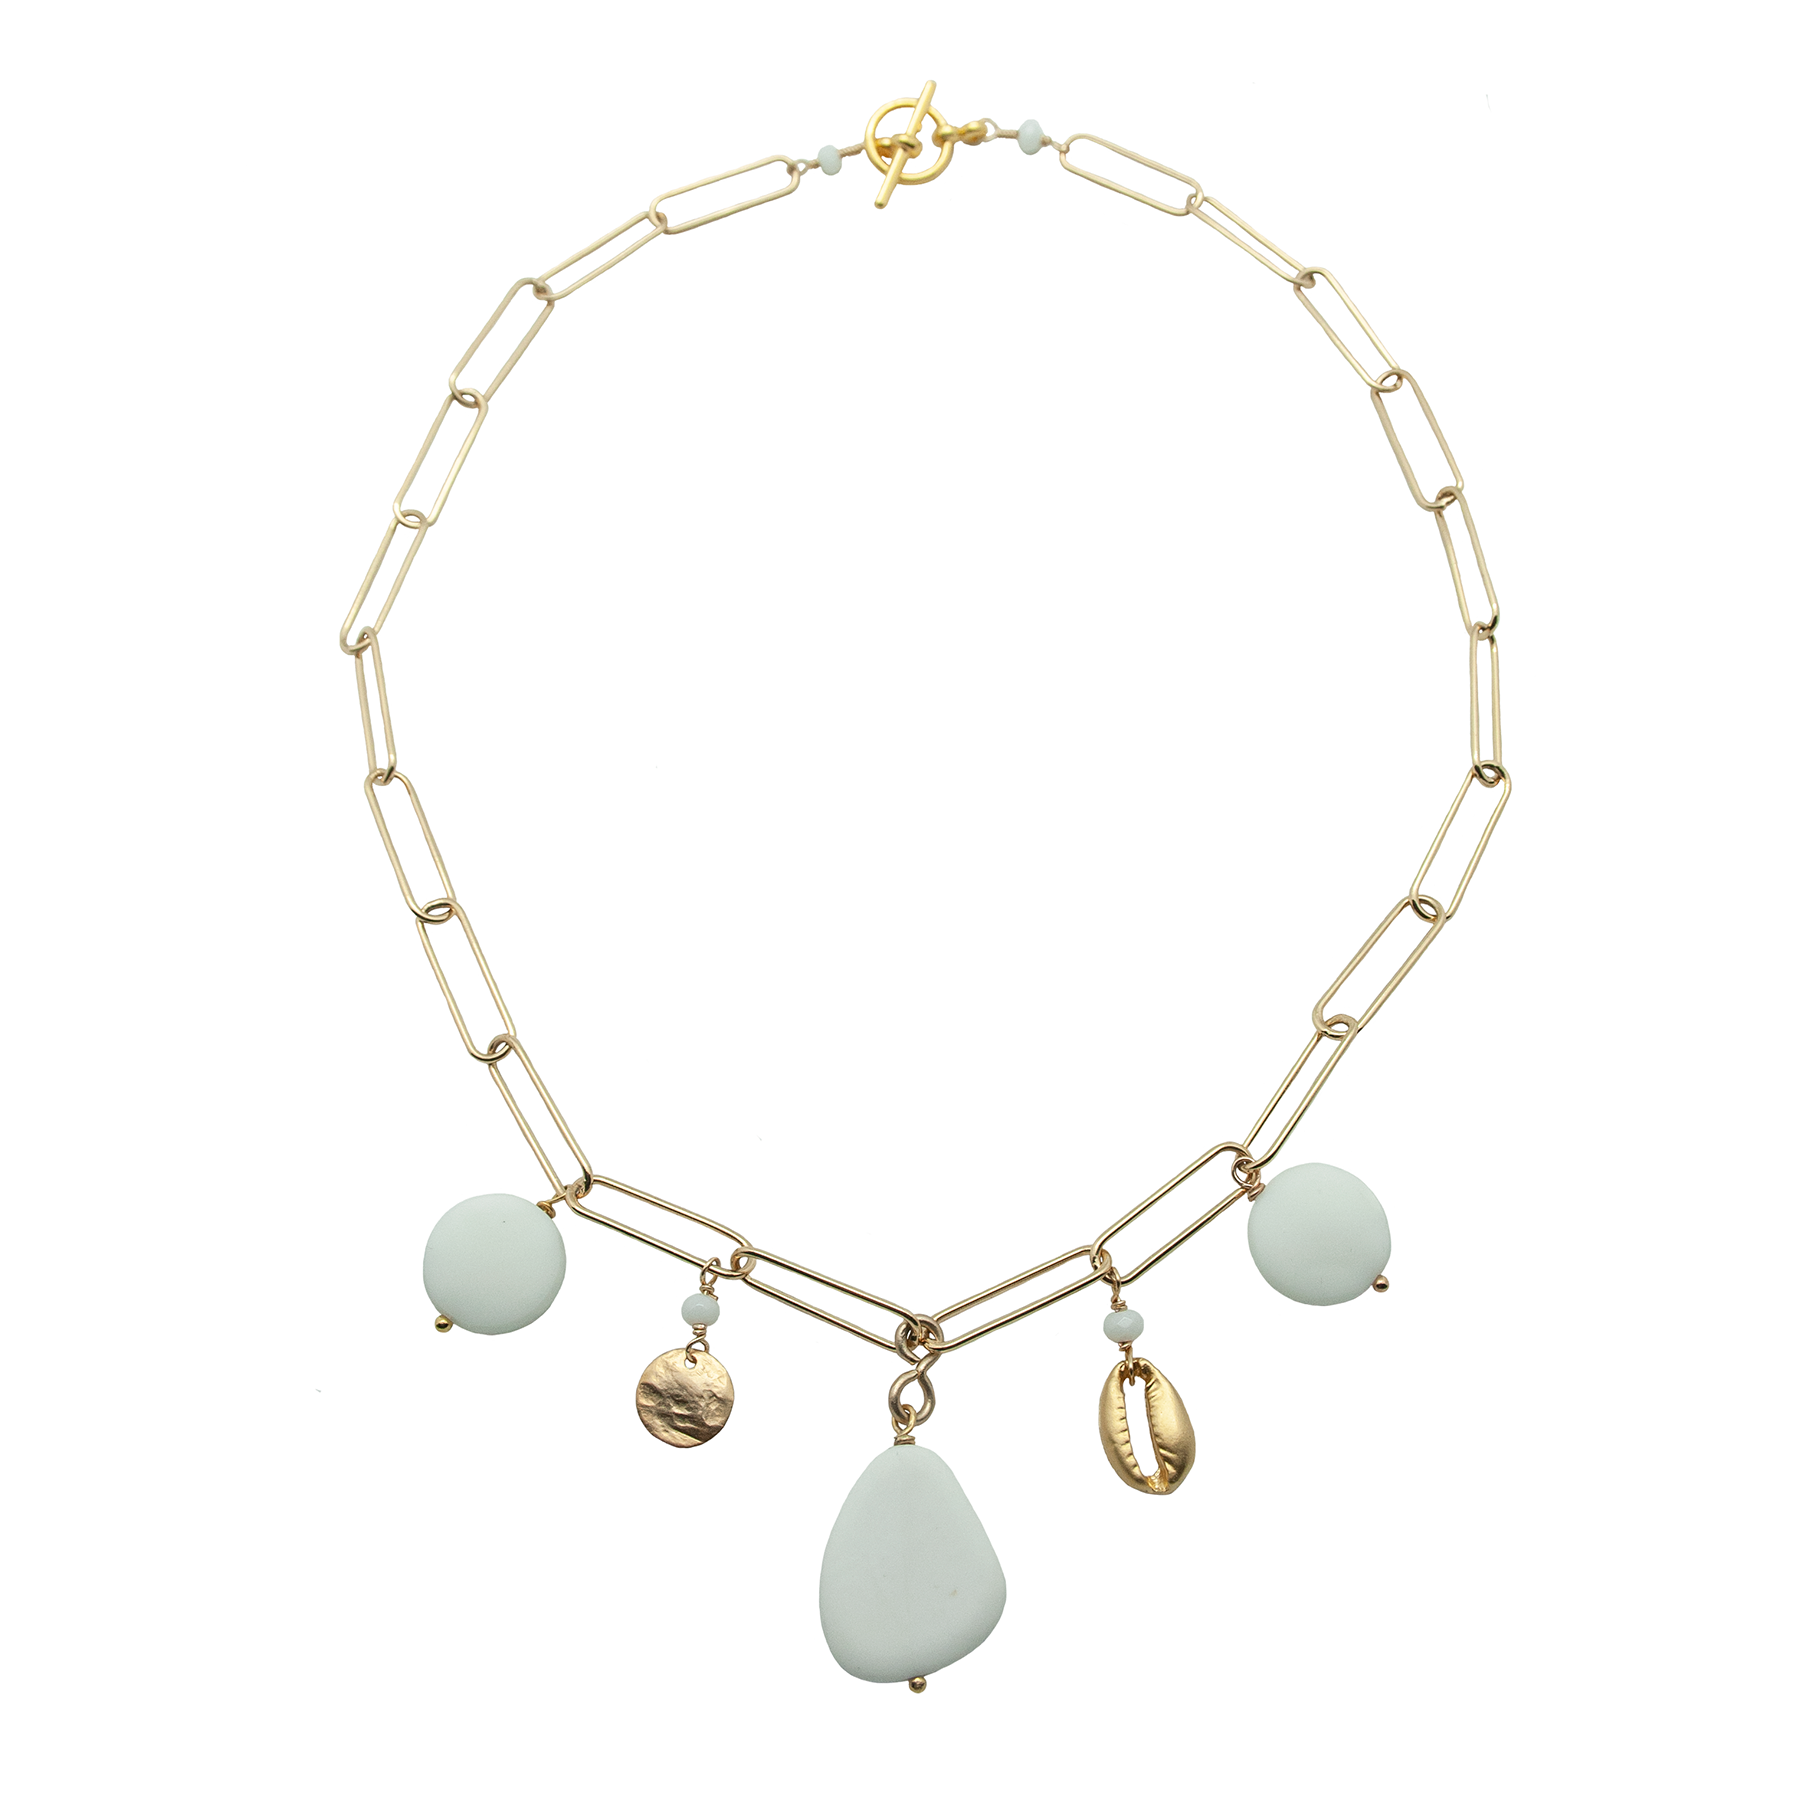 white charm link chain necklace with recycled glass stones and gold shell and disc